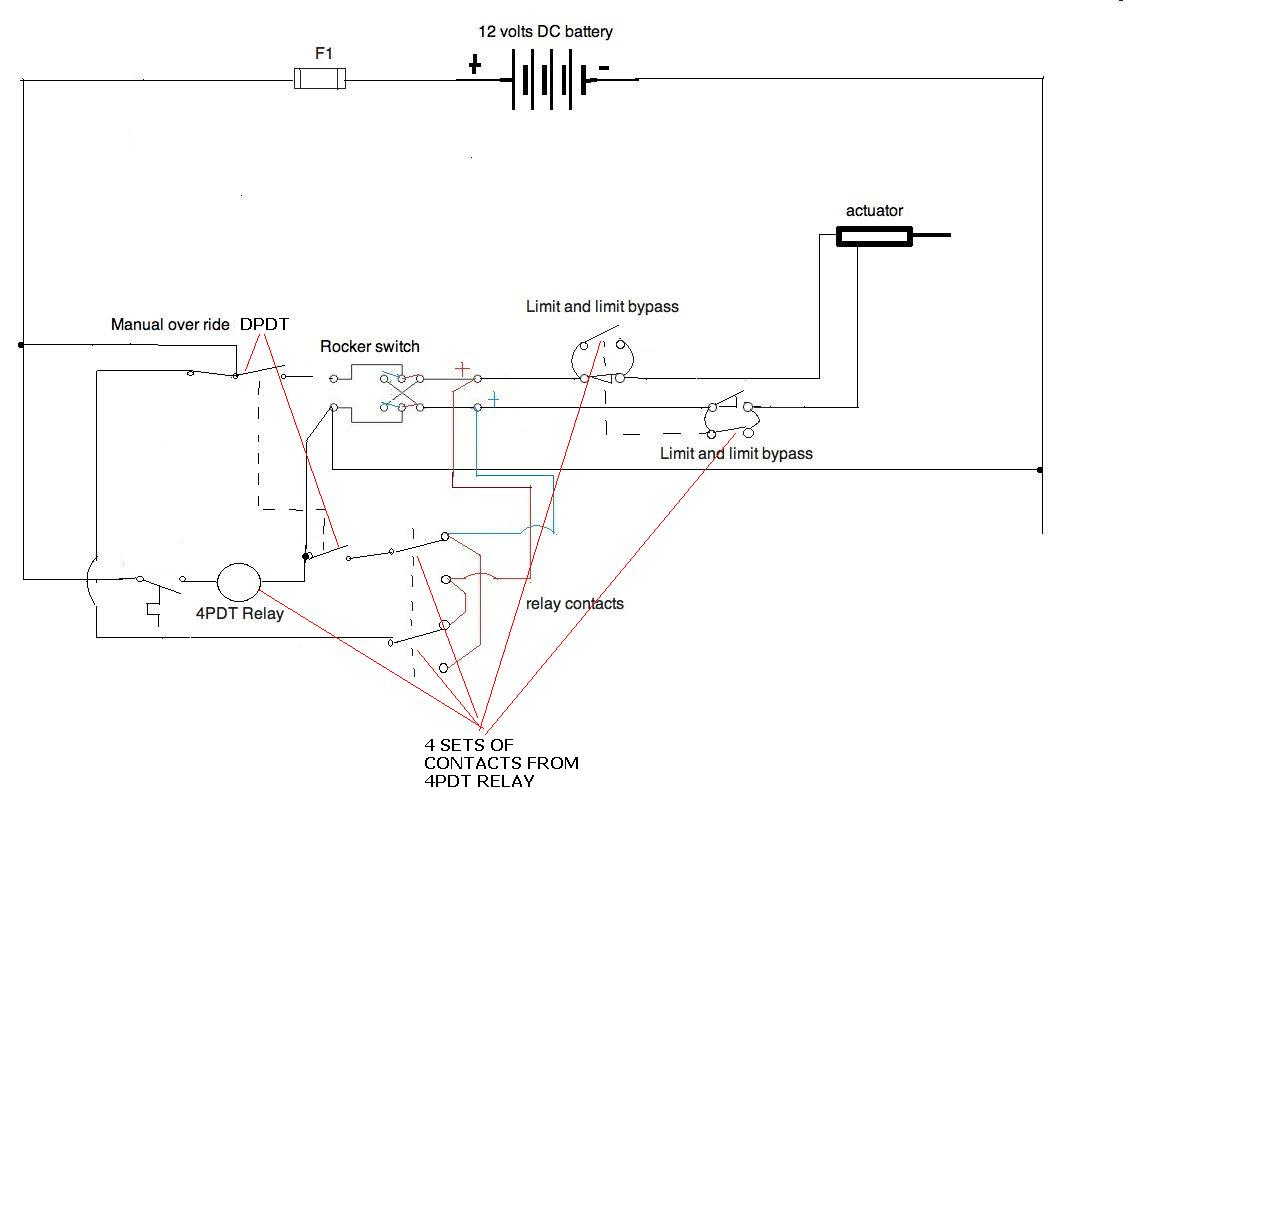 i need a wiring diagram for a 12v application all components here is the isolation for the manual overide circuit too use a dpdt instead of single pole